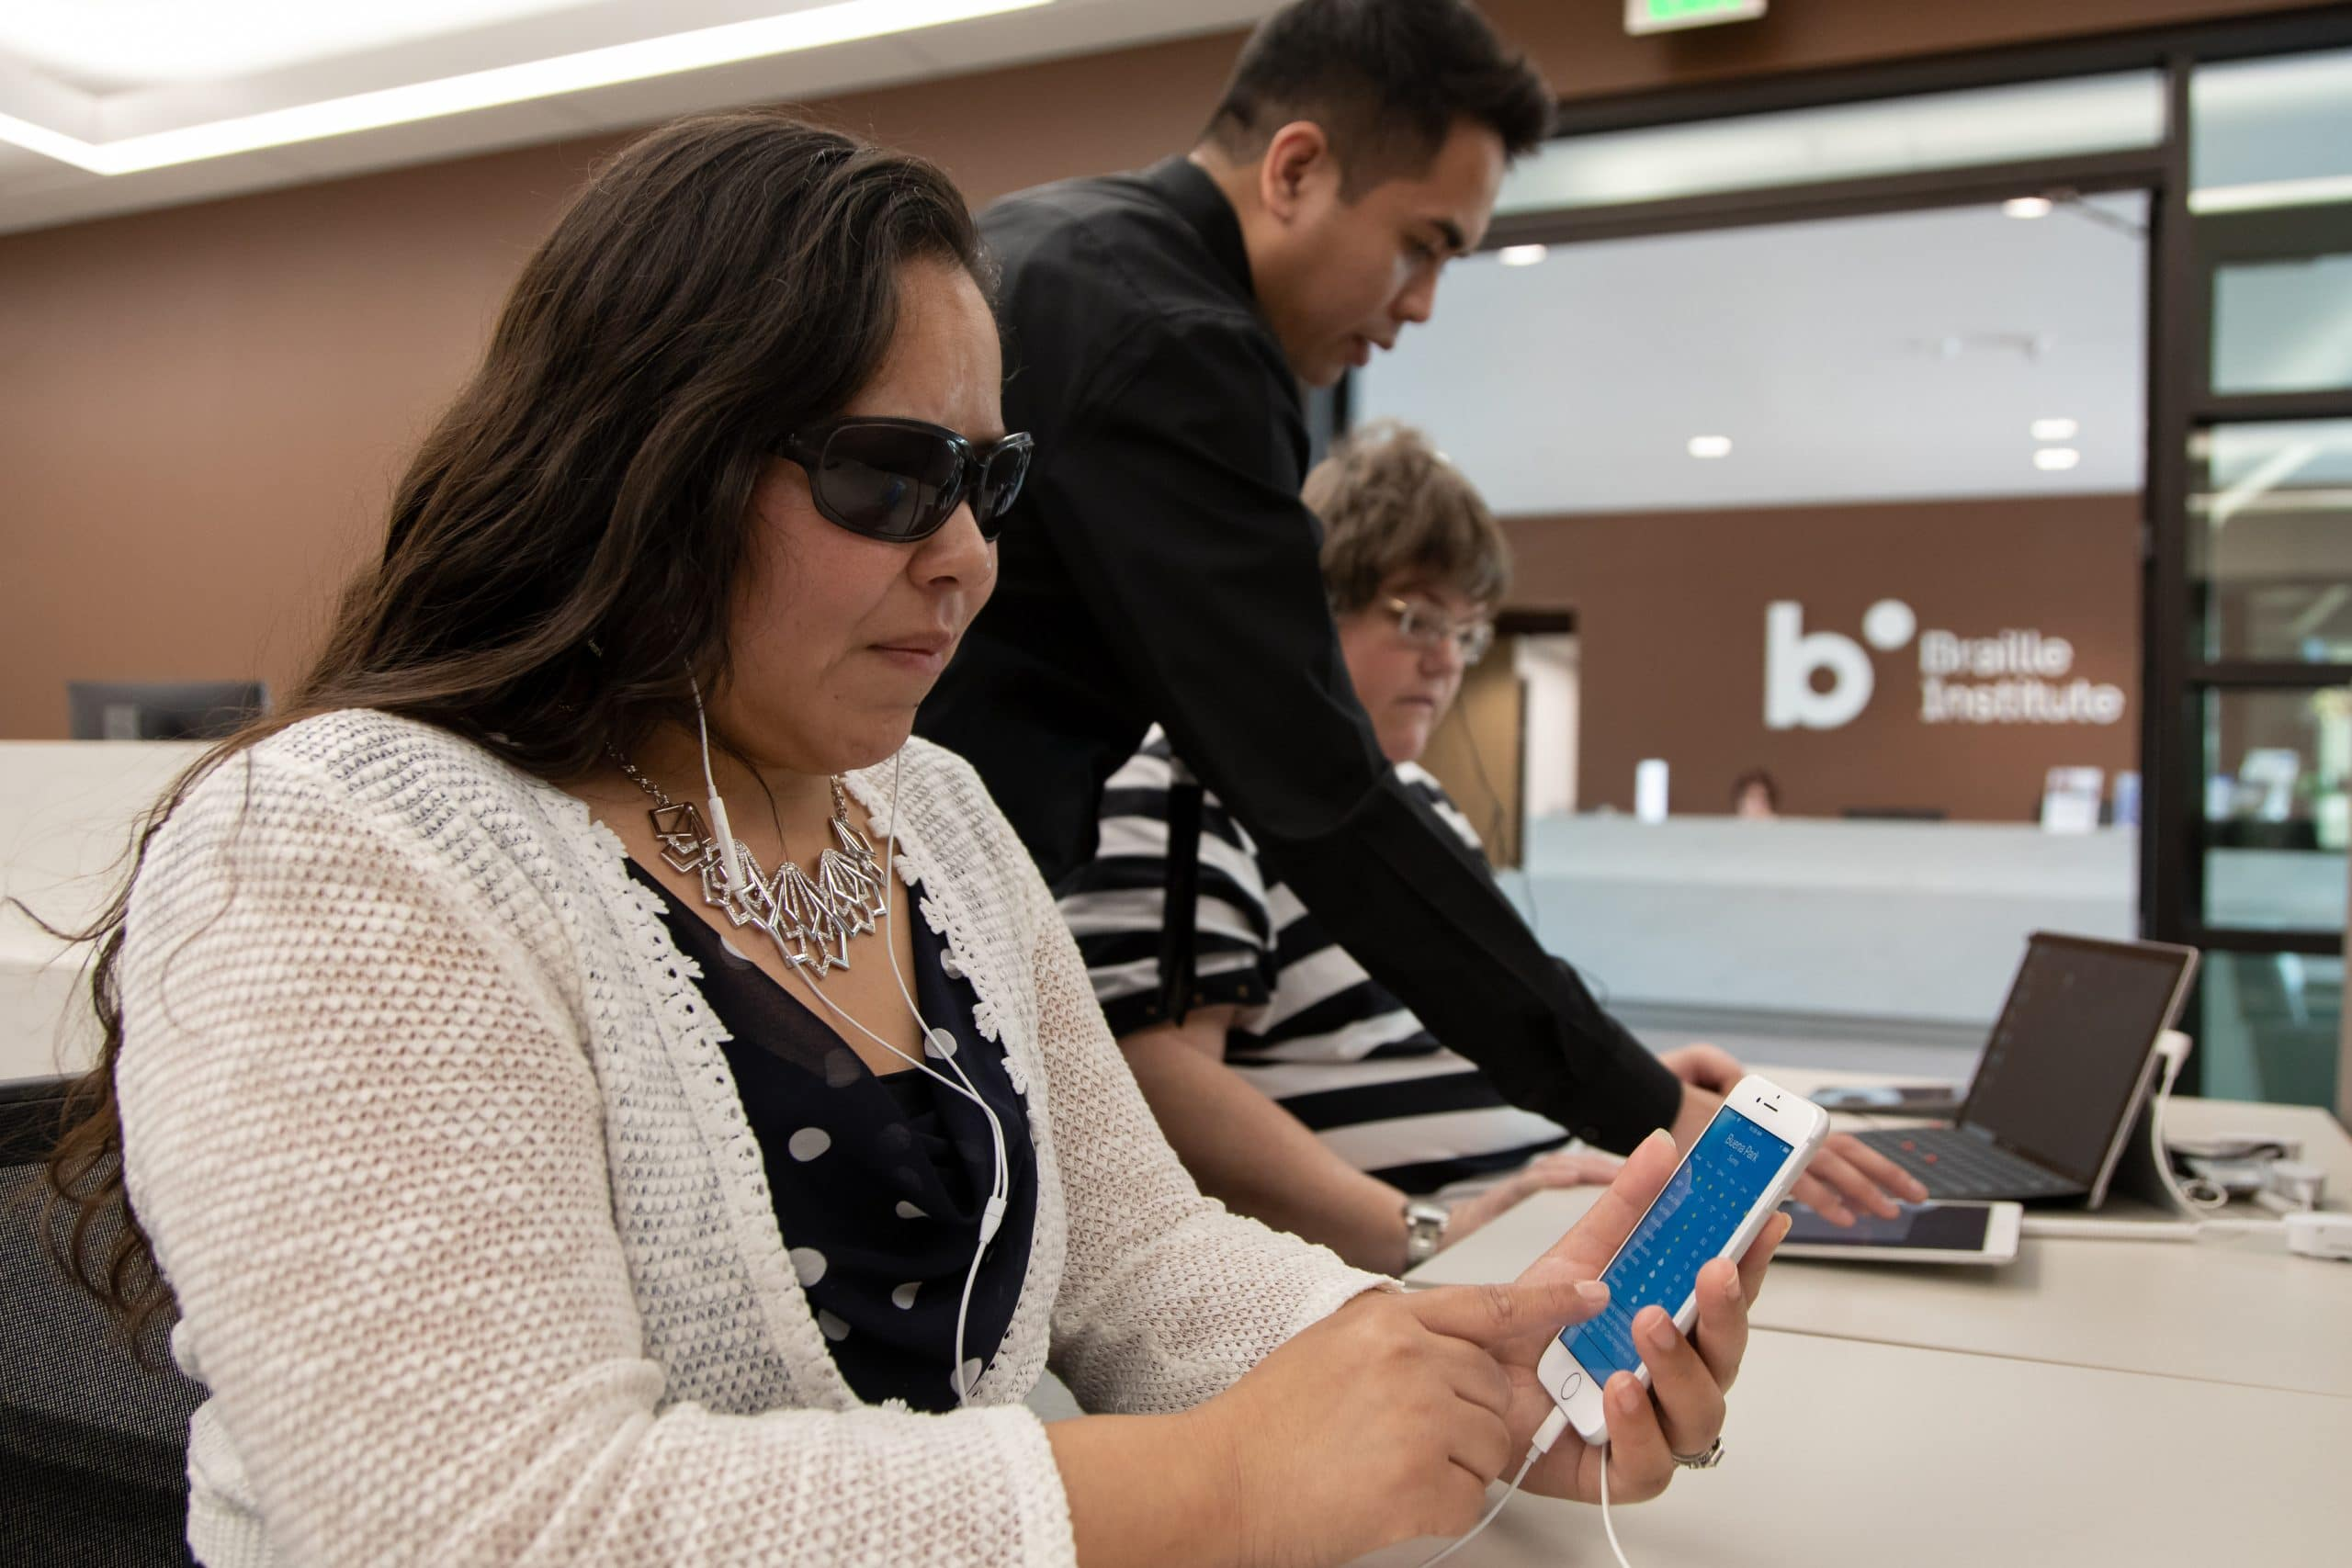 Woman using mobile device to access BARD app, instructor working with another woman in the background